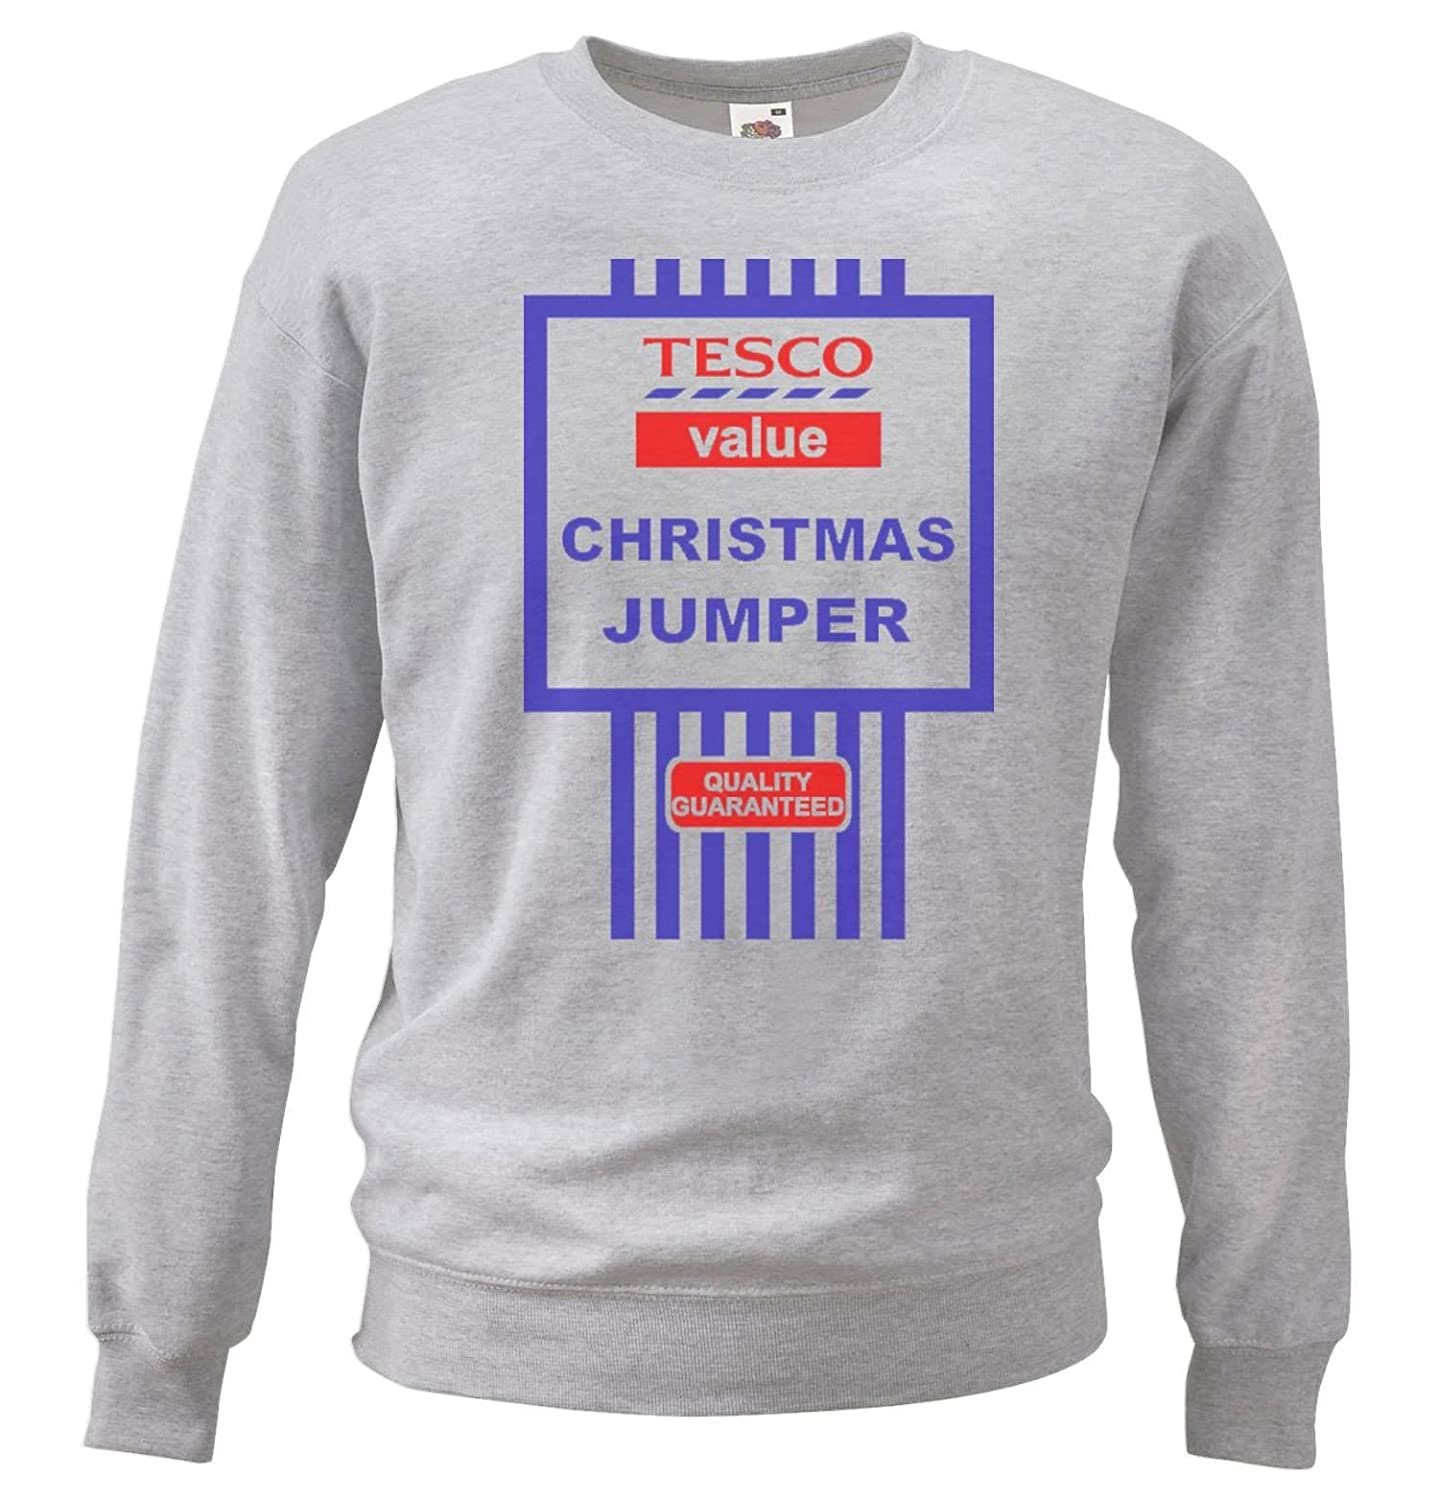 fashion style best selection of 2019 newest selection Grey or White Tesco's Funny Value Christmas Jumper Tesco Black Friday  Sweatshirt